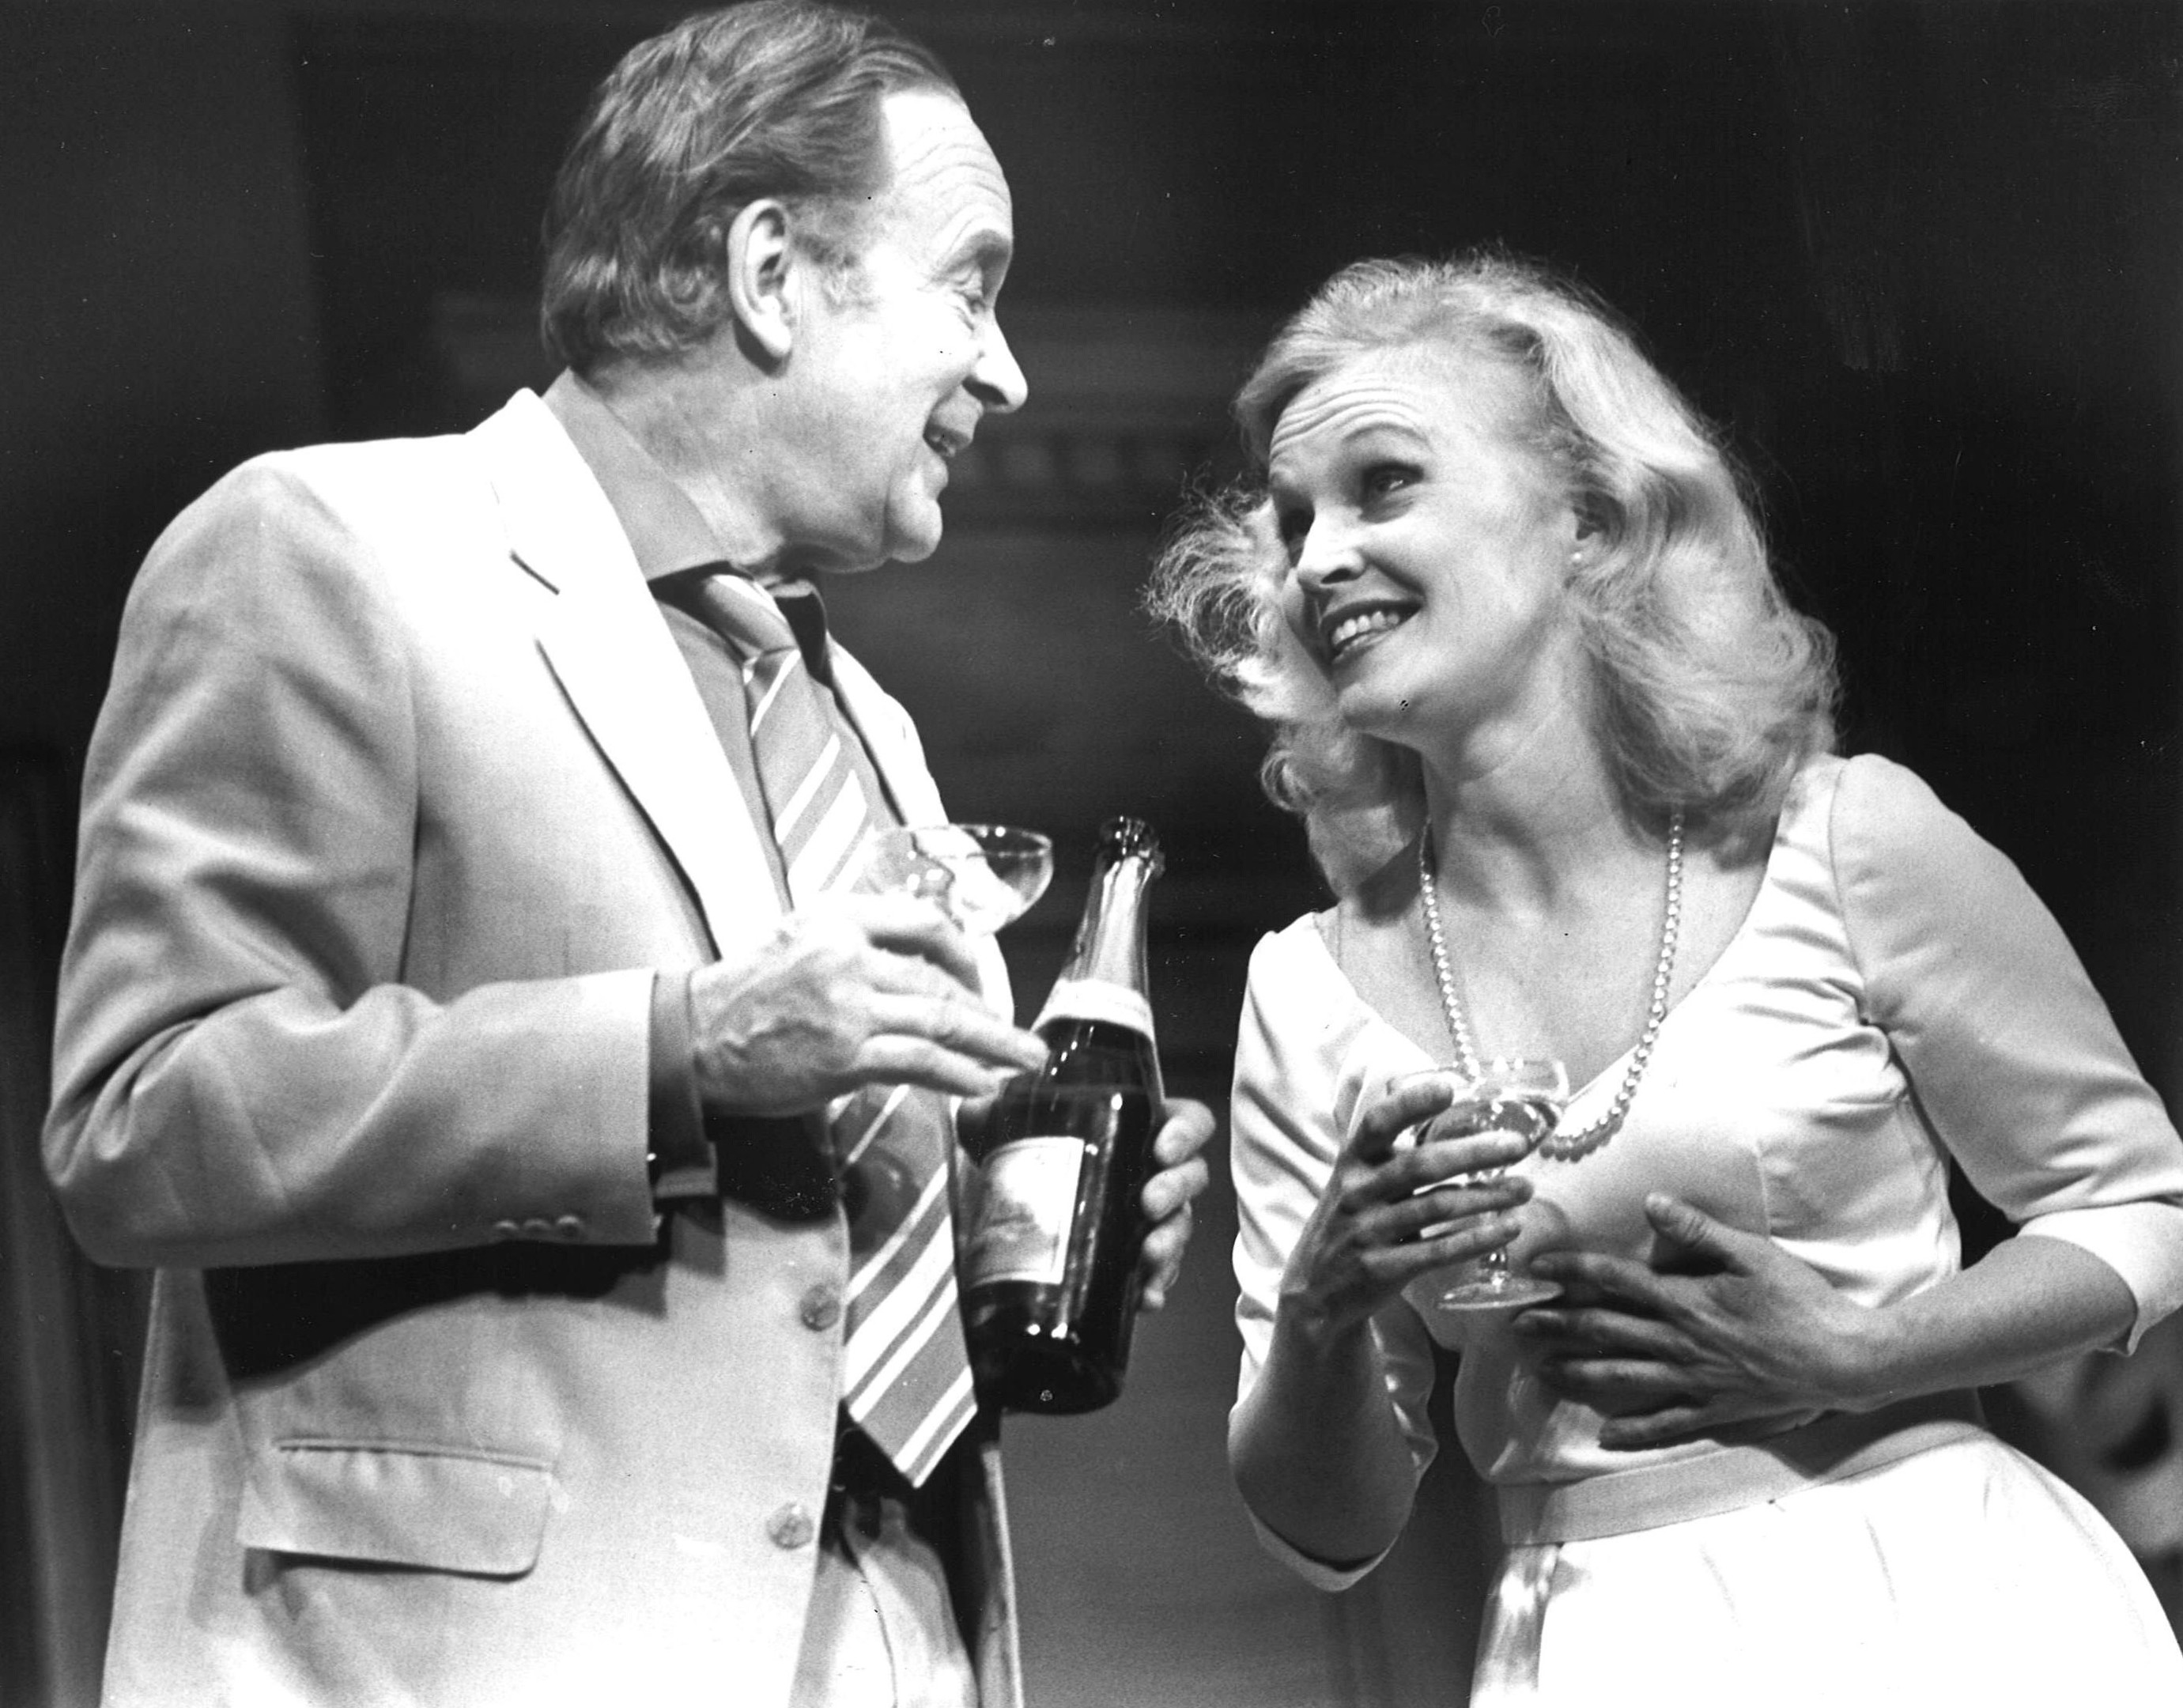 Tony Britton and Sandra Dickinson star in the sophisticated American comedy The Seven Year Itch in 1986. Picture by Portman Theatrical Productions.